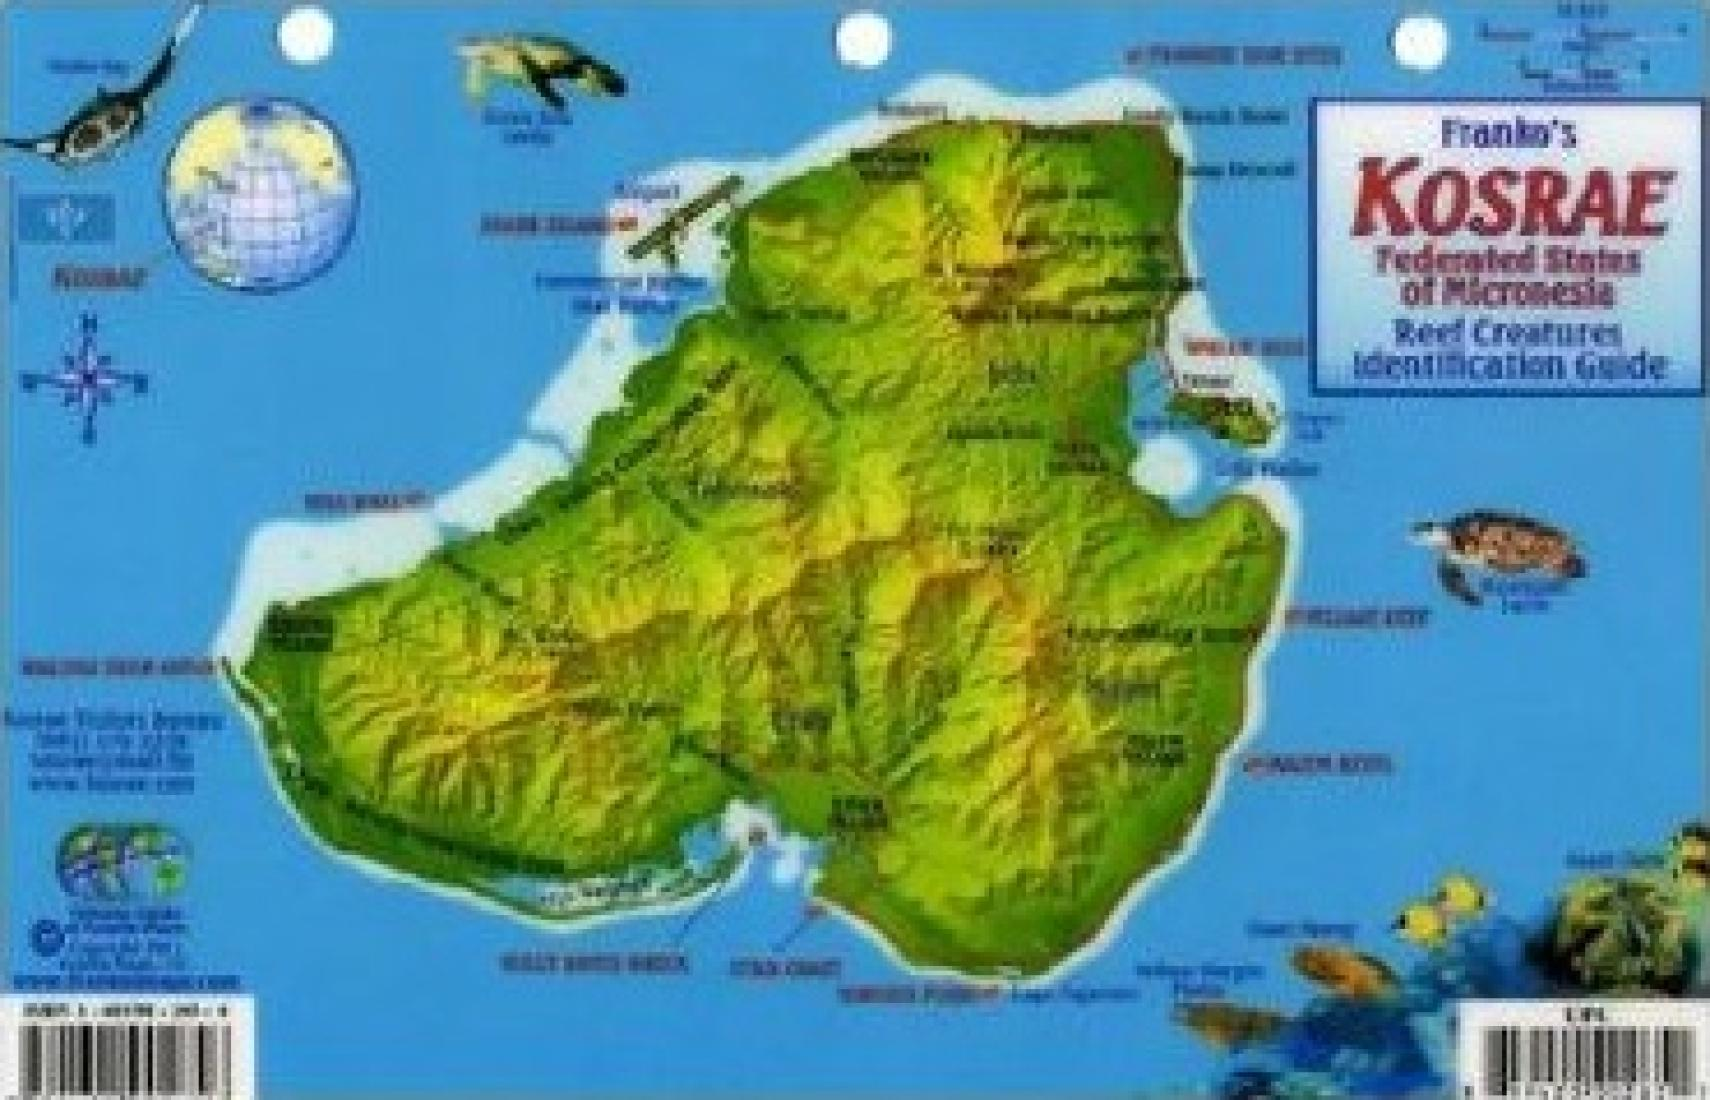 Kosrae federated states of micronesia reef creatures kosrae federated states of micronesia reef creatures identification guide by frankos maps ltd publicscrutiny Images